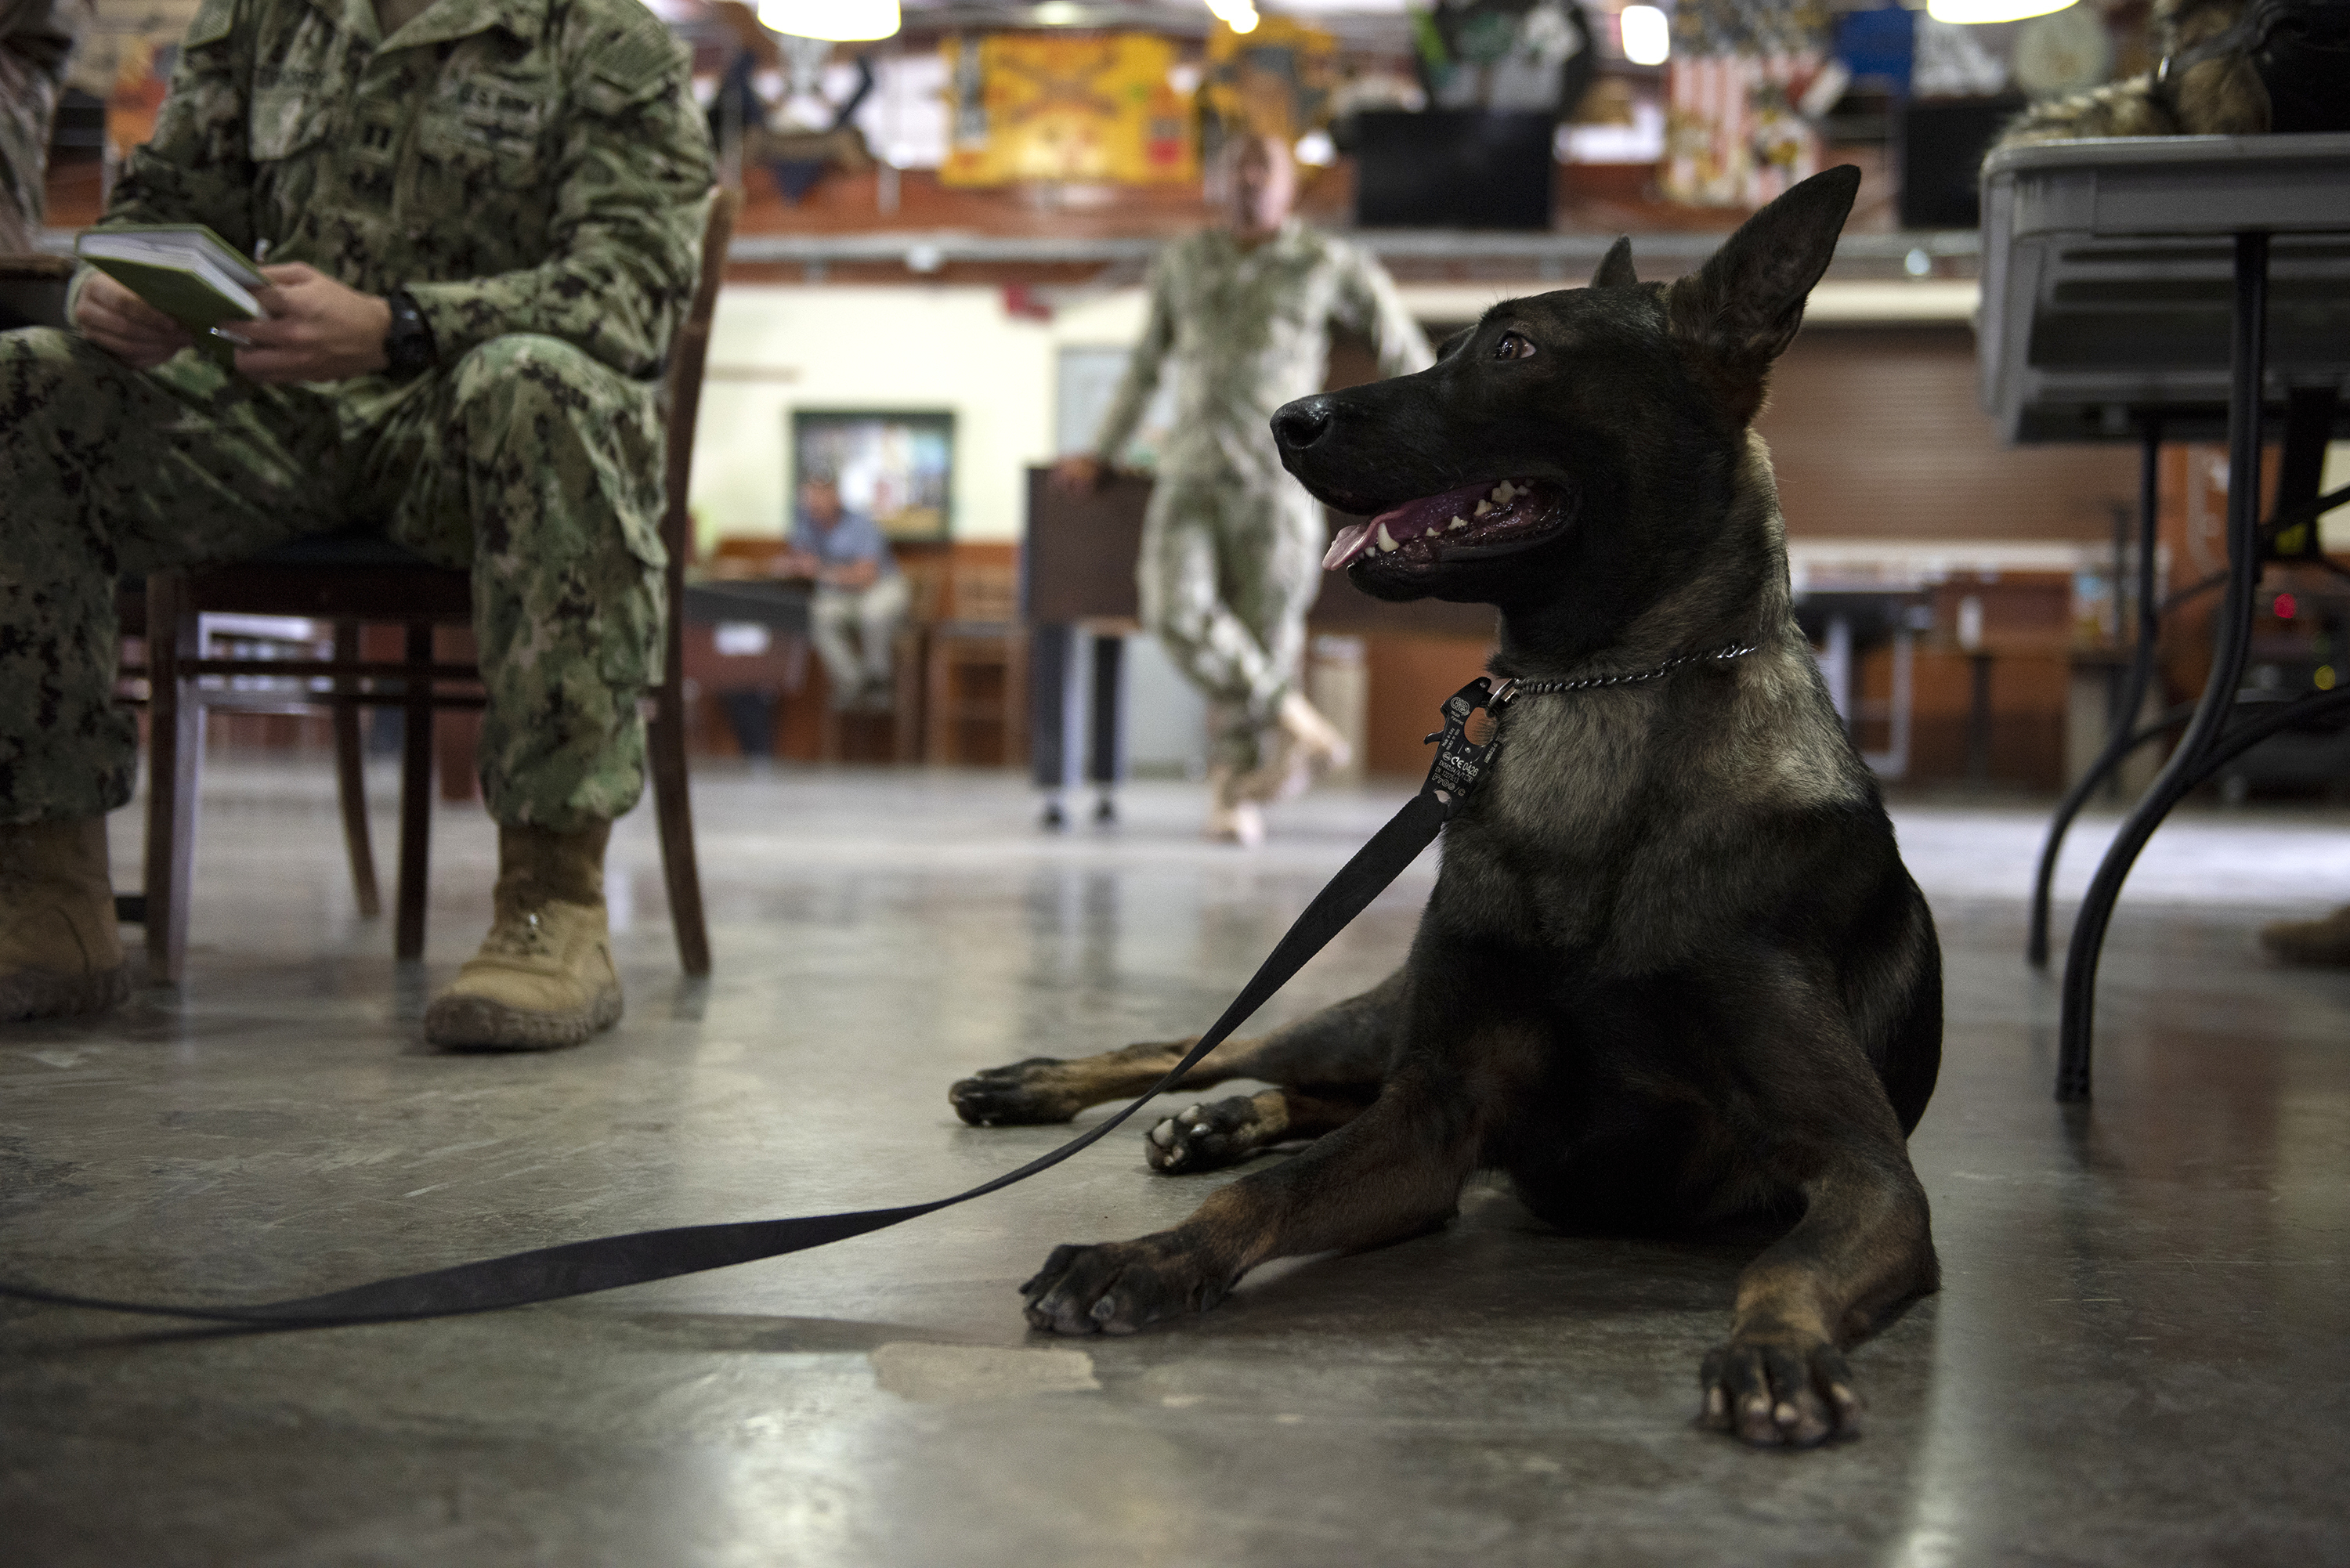 U.S. Navy Military Working Dog Pponder lies on the floor on Camp Lemonnier, Djibouti, Aug. 18, 2018. Pponder participated in a hands-on canine tactical combat casualty care training for service members, to help prepare them for treating canines in the field. (U.S. Air National Guard photo by Master Sgt. Sarah Mattison)